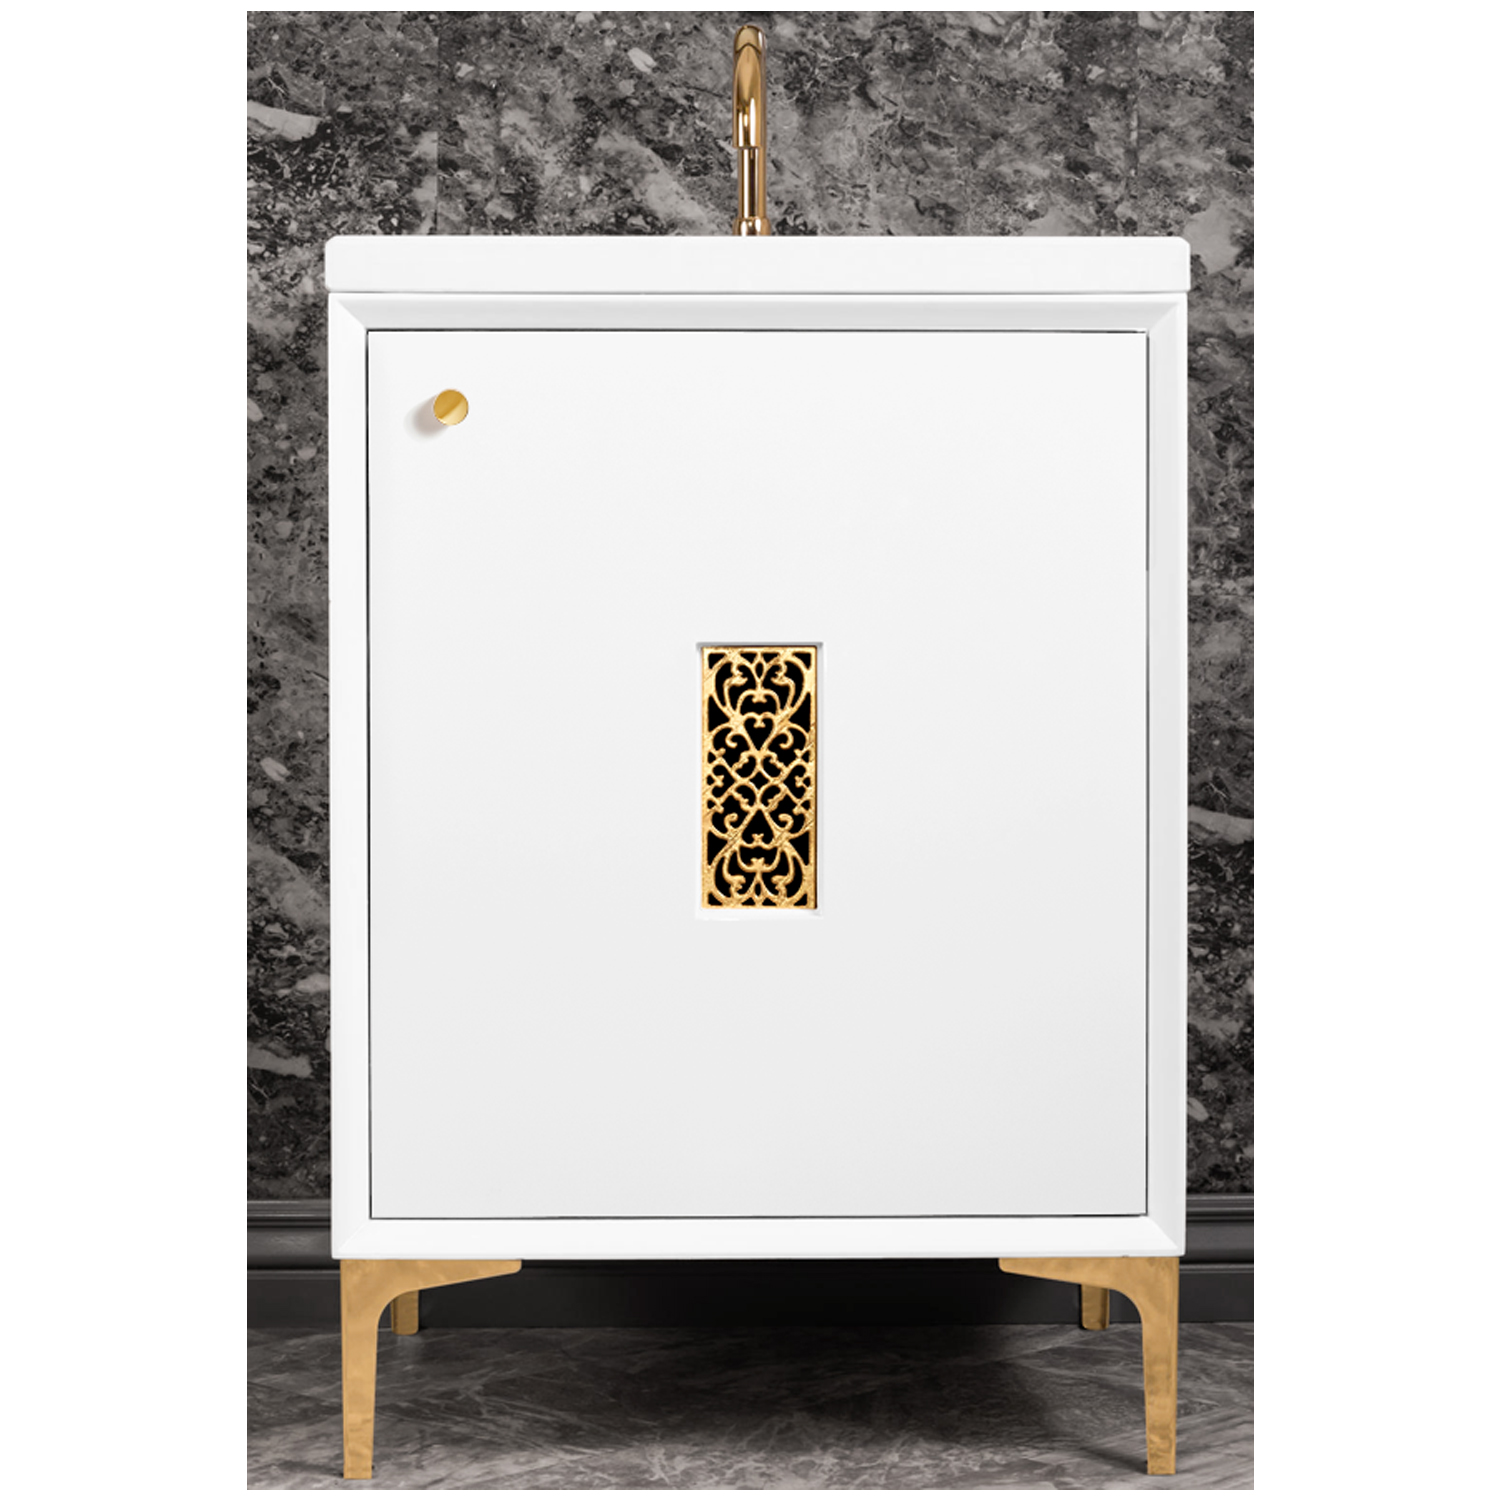 """VAN24W-012   24"""" White Frame with Filigree - Shown with PB (Polished Brass)"""